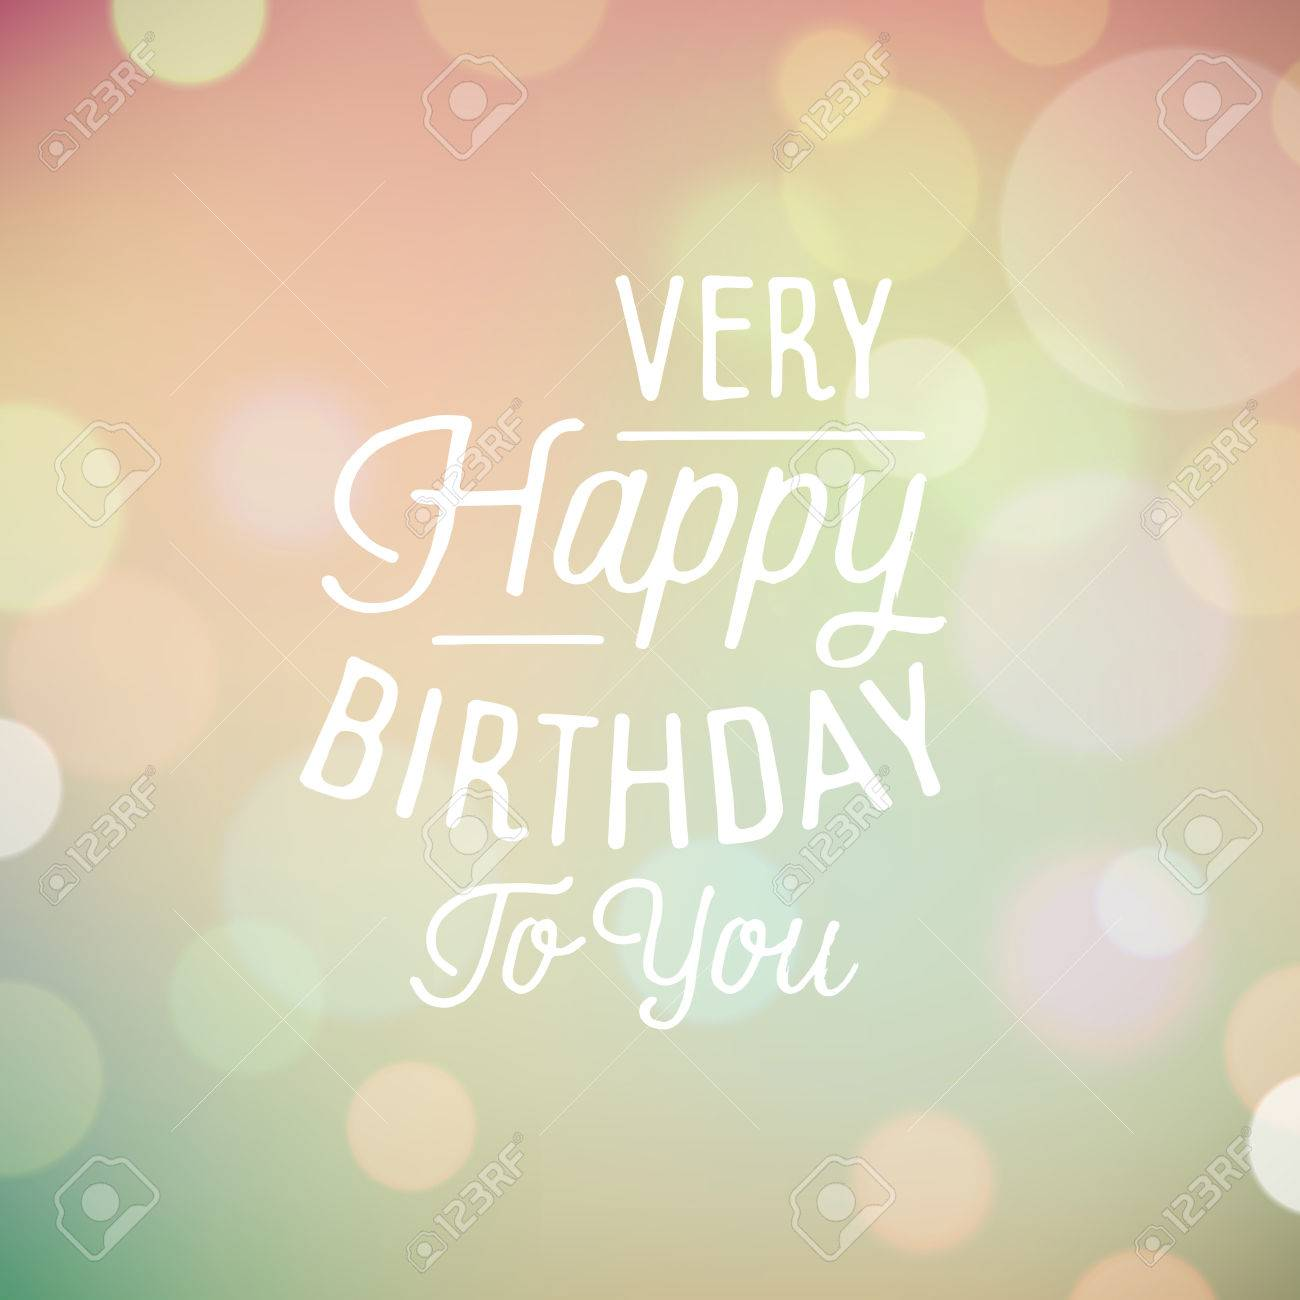 Vintage Bokeh Background With Slogan For Birthday Greetings